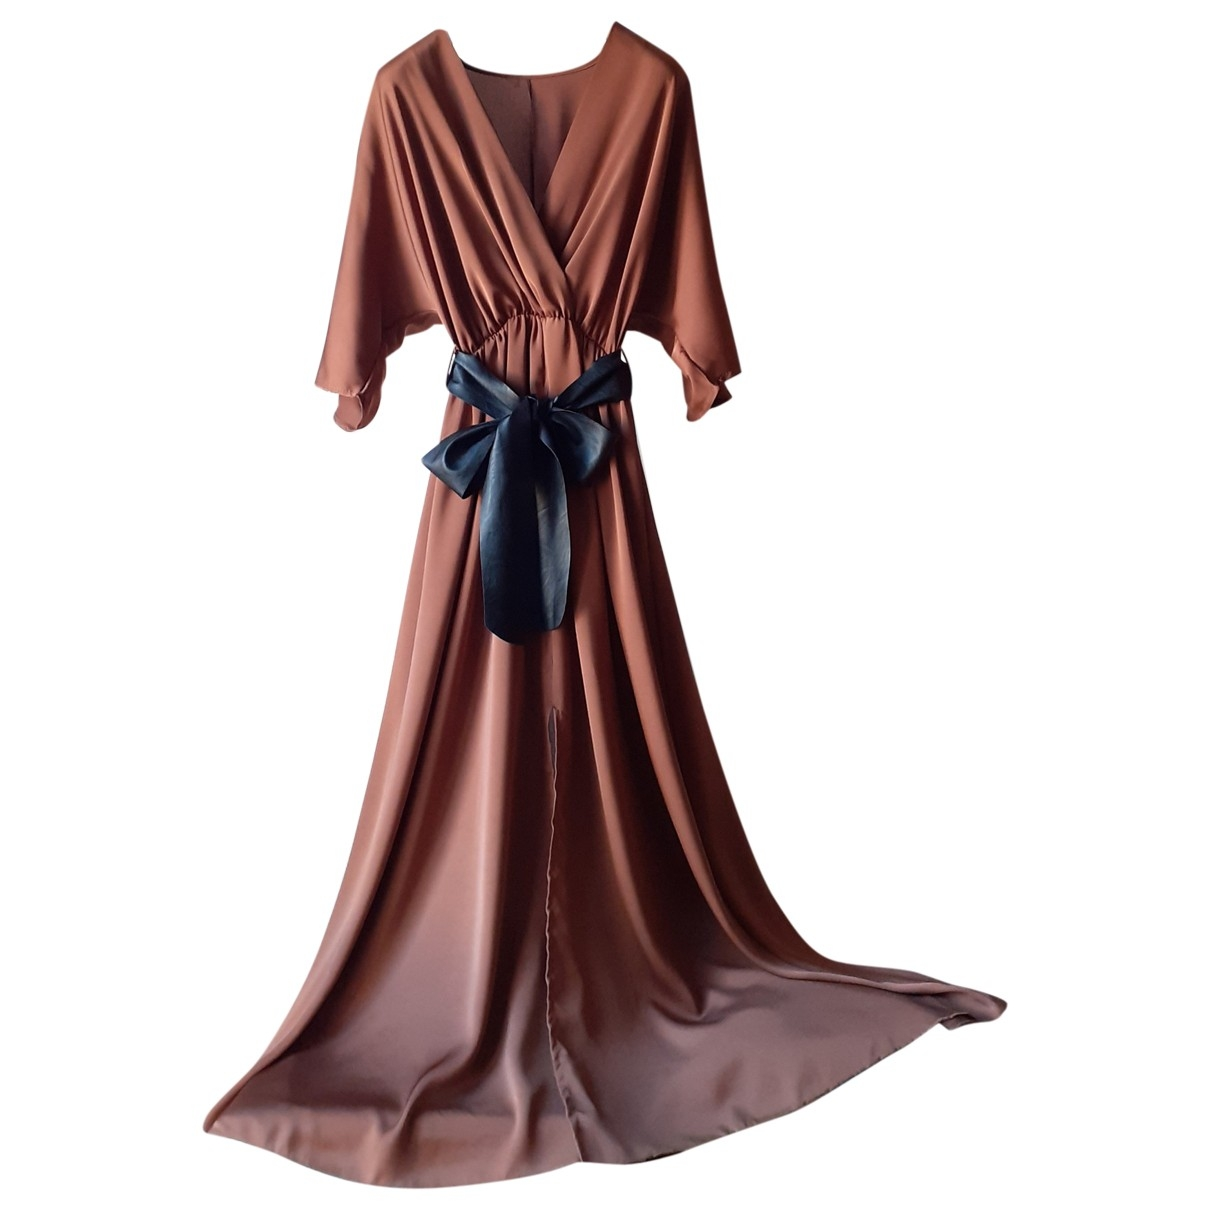 Non Signé / Unsigned \N Brown dress for Women One Size IT